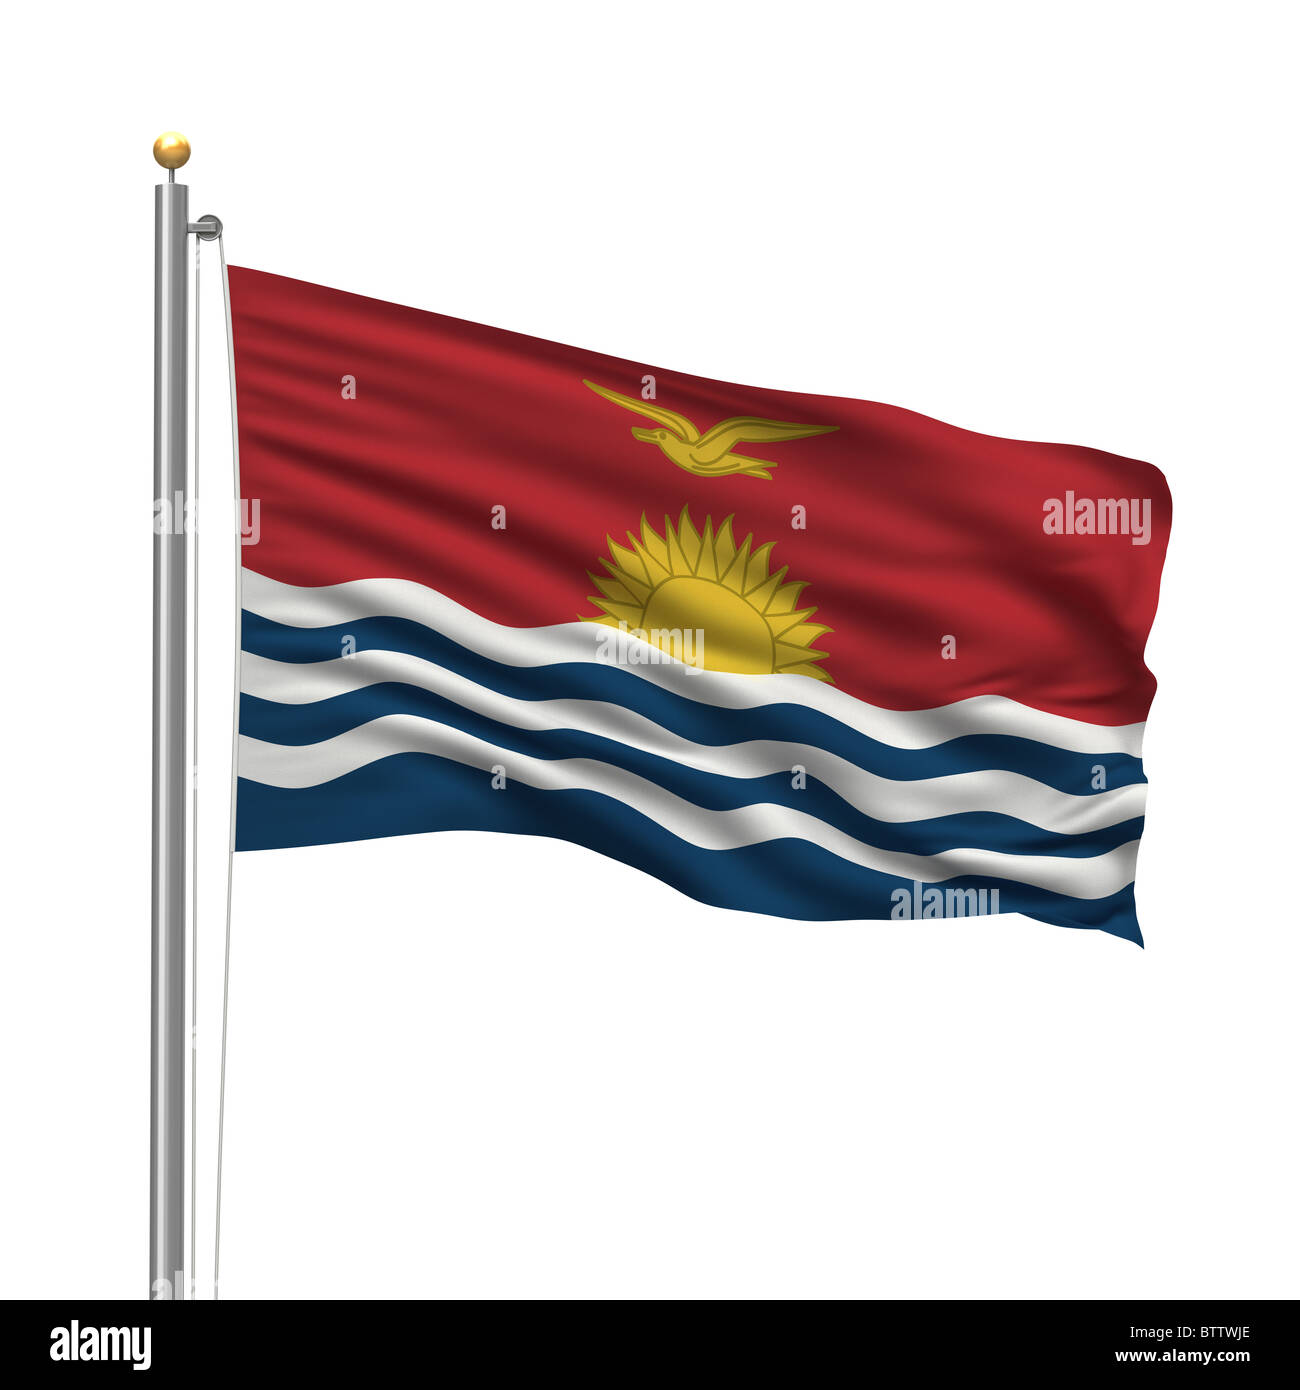 Flag of Kiribati - Stock Image